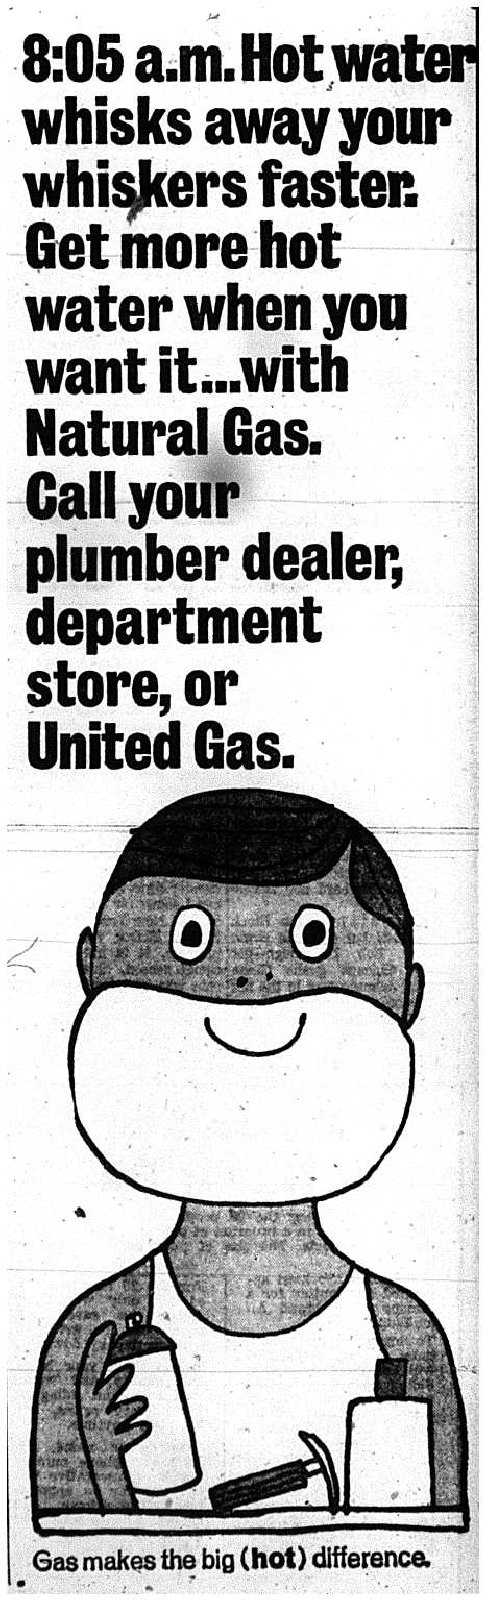 United Gas Advertisement, 1966